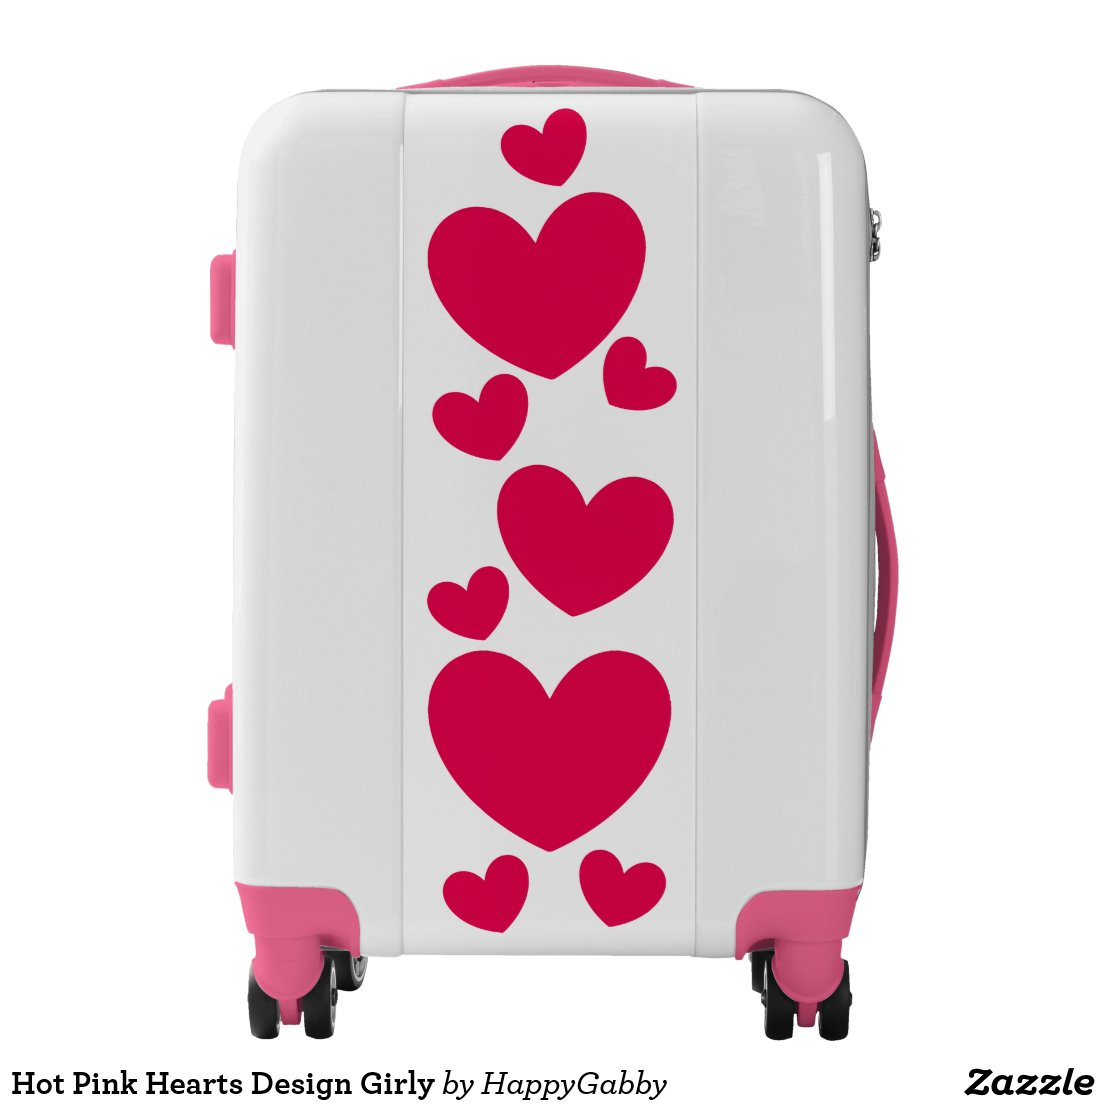 Hot Pink Hearts Design Girly Luggage